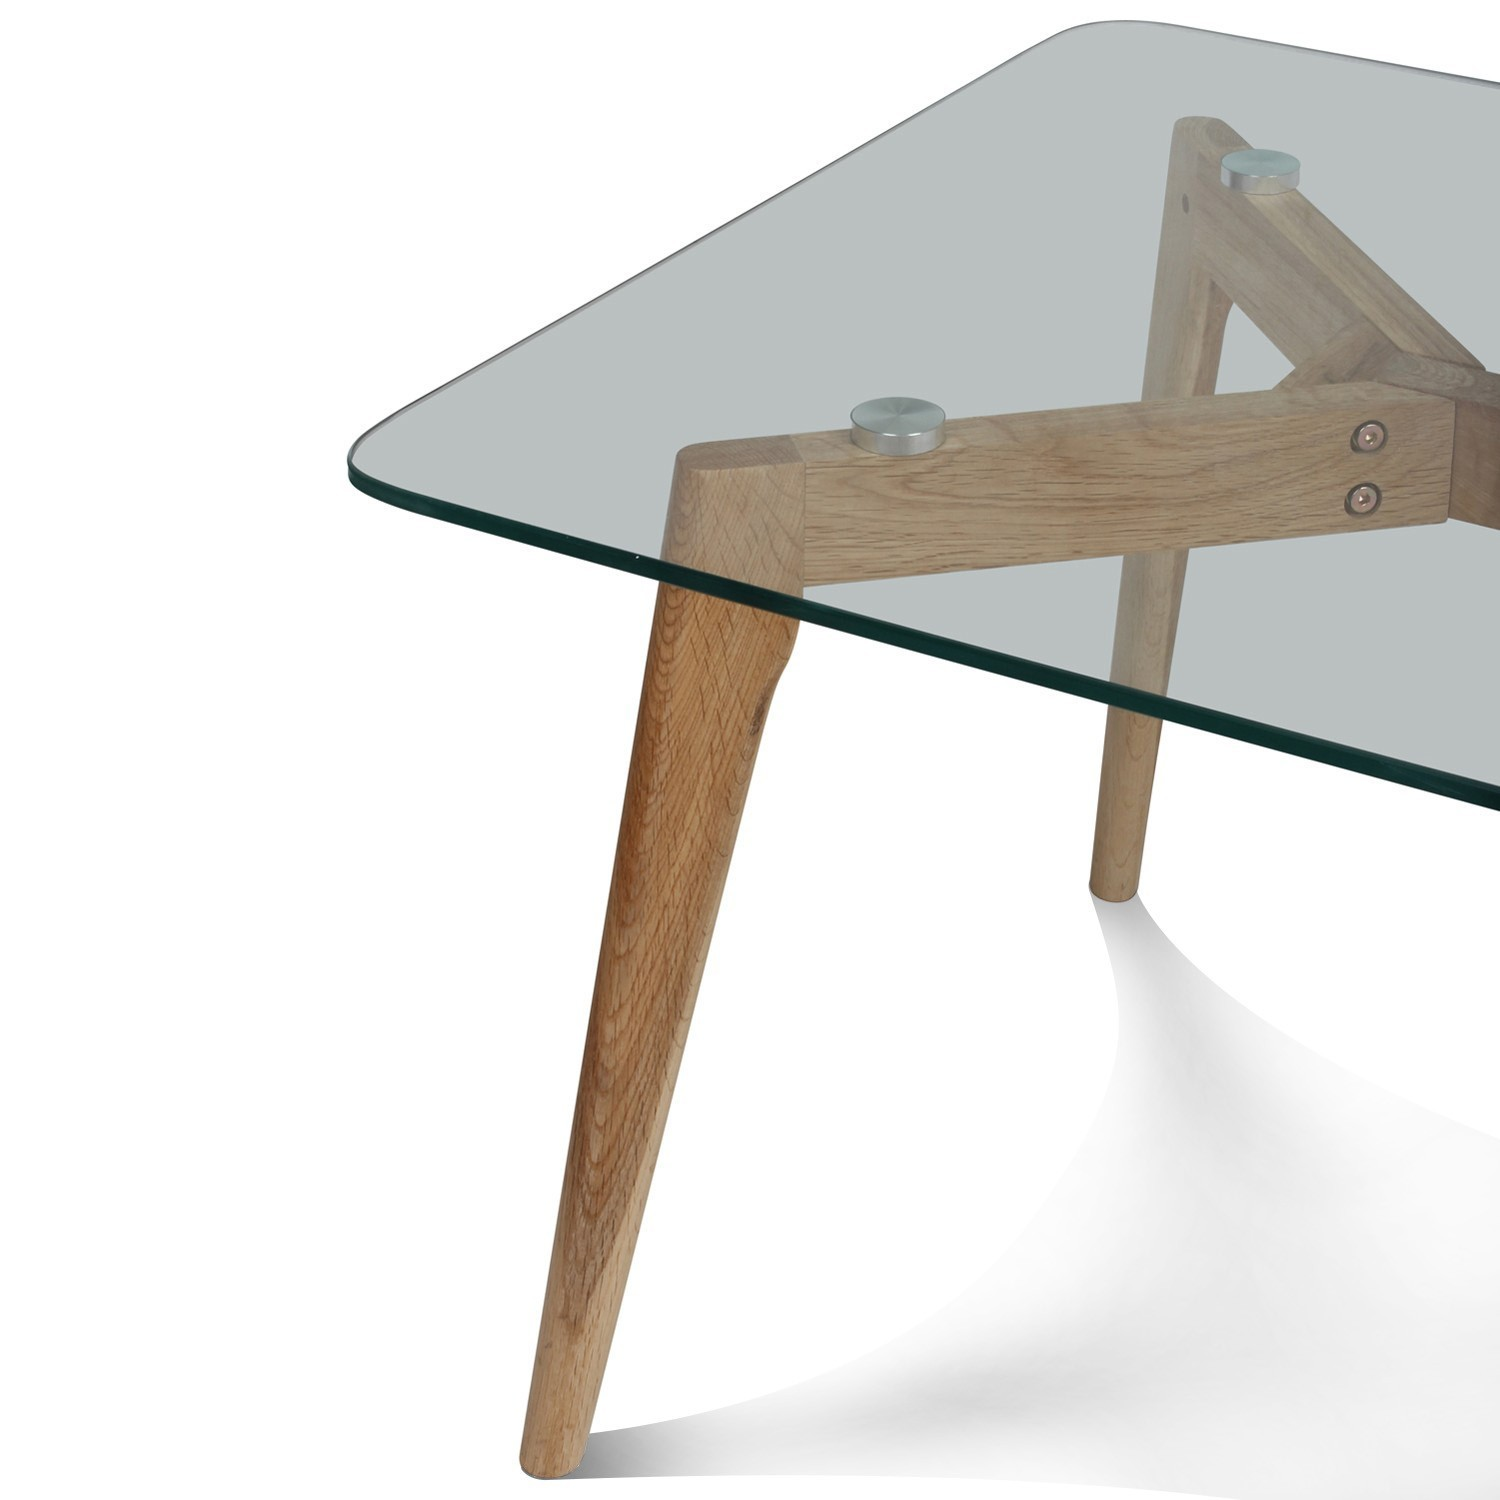 table basse verre et bois scandinave 110x60cm demeure et jardin. Black Bedroom Furniture Sets. Home Design Ideas